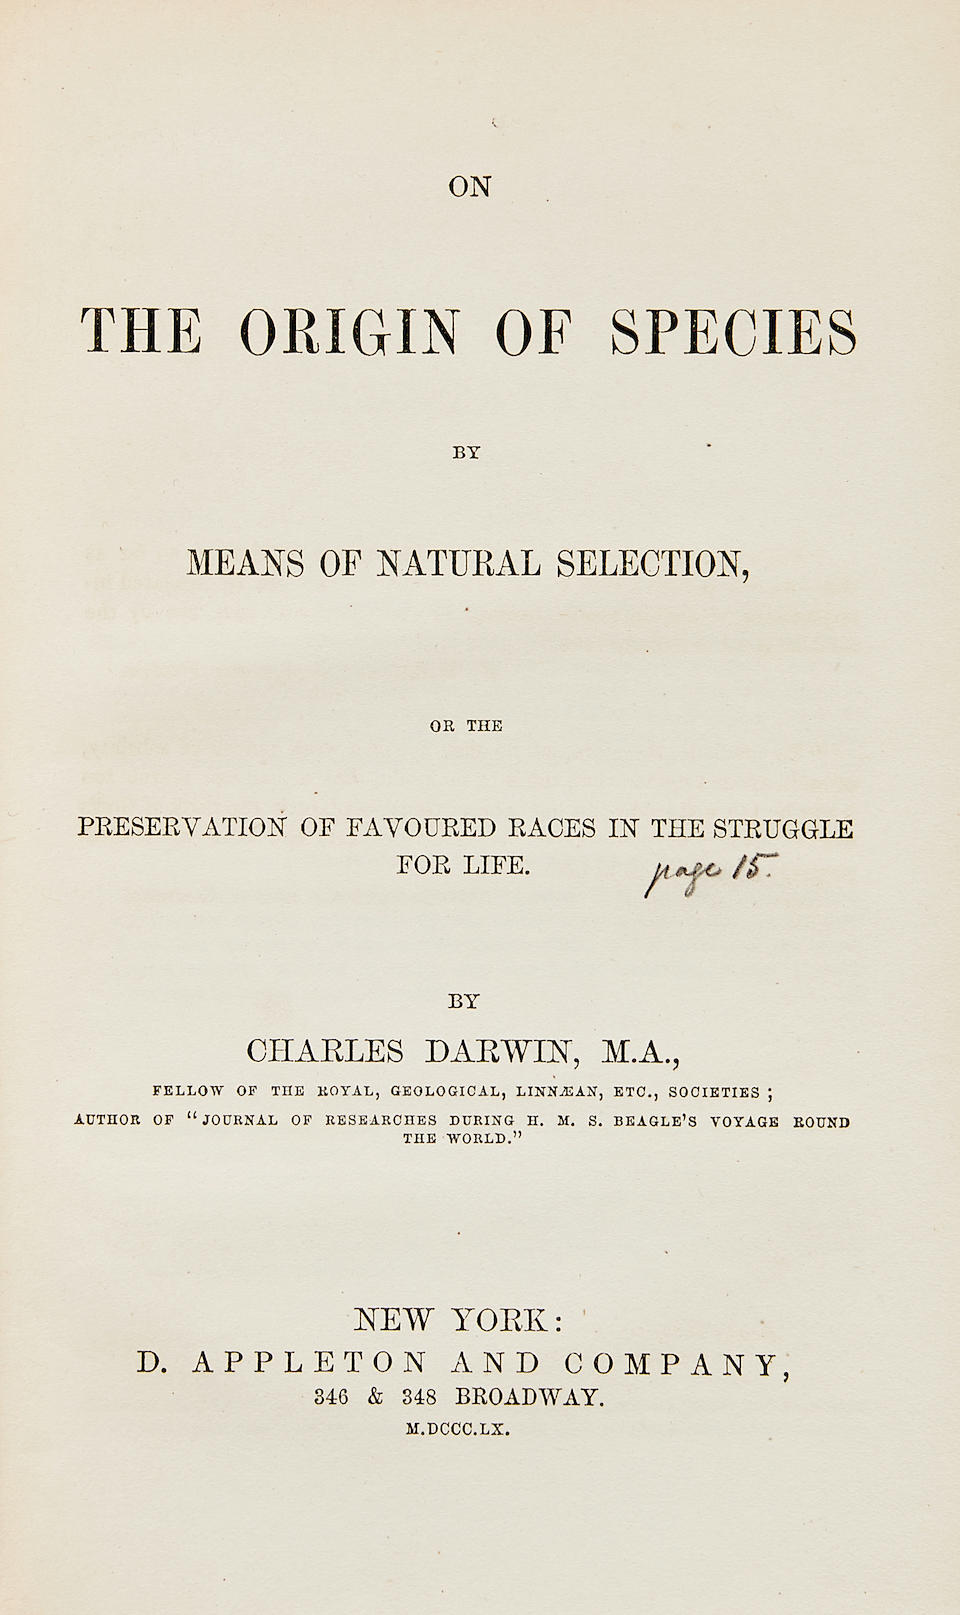 DARWIN, CHARLES. 1809-1882. On the Origin of Species by Means of Natural Selection. New York: D. Appleton & Company, 1860.